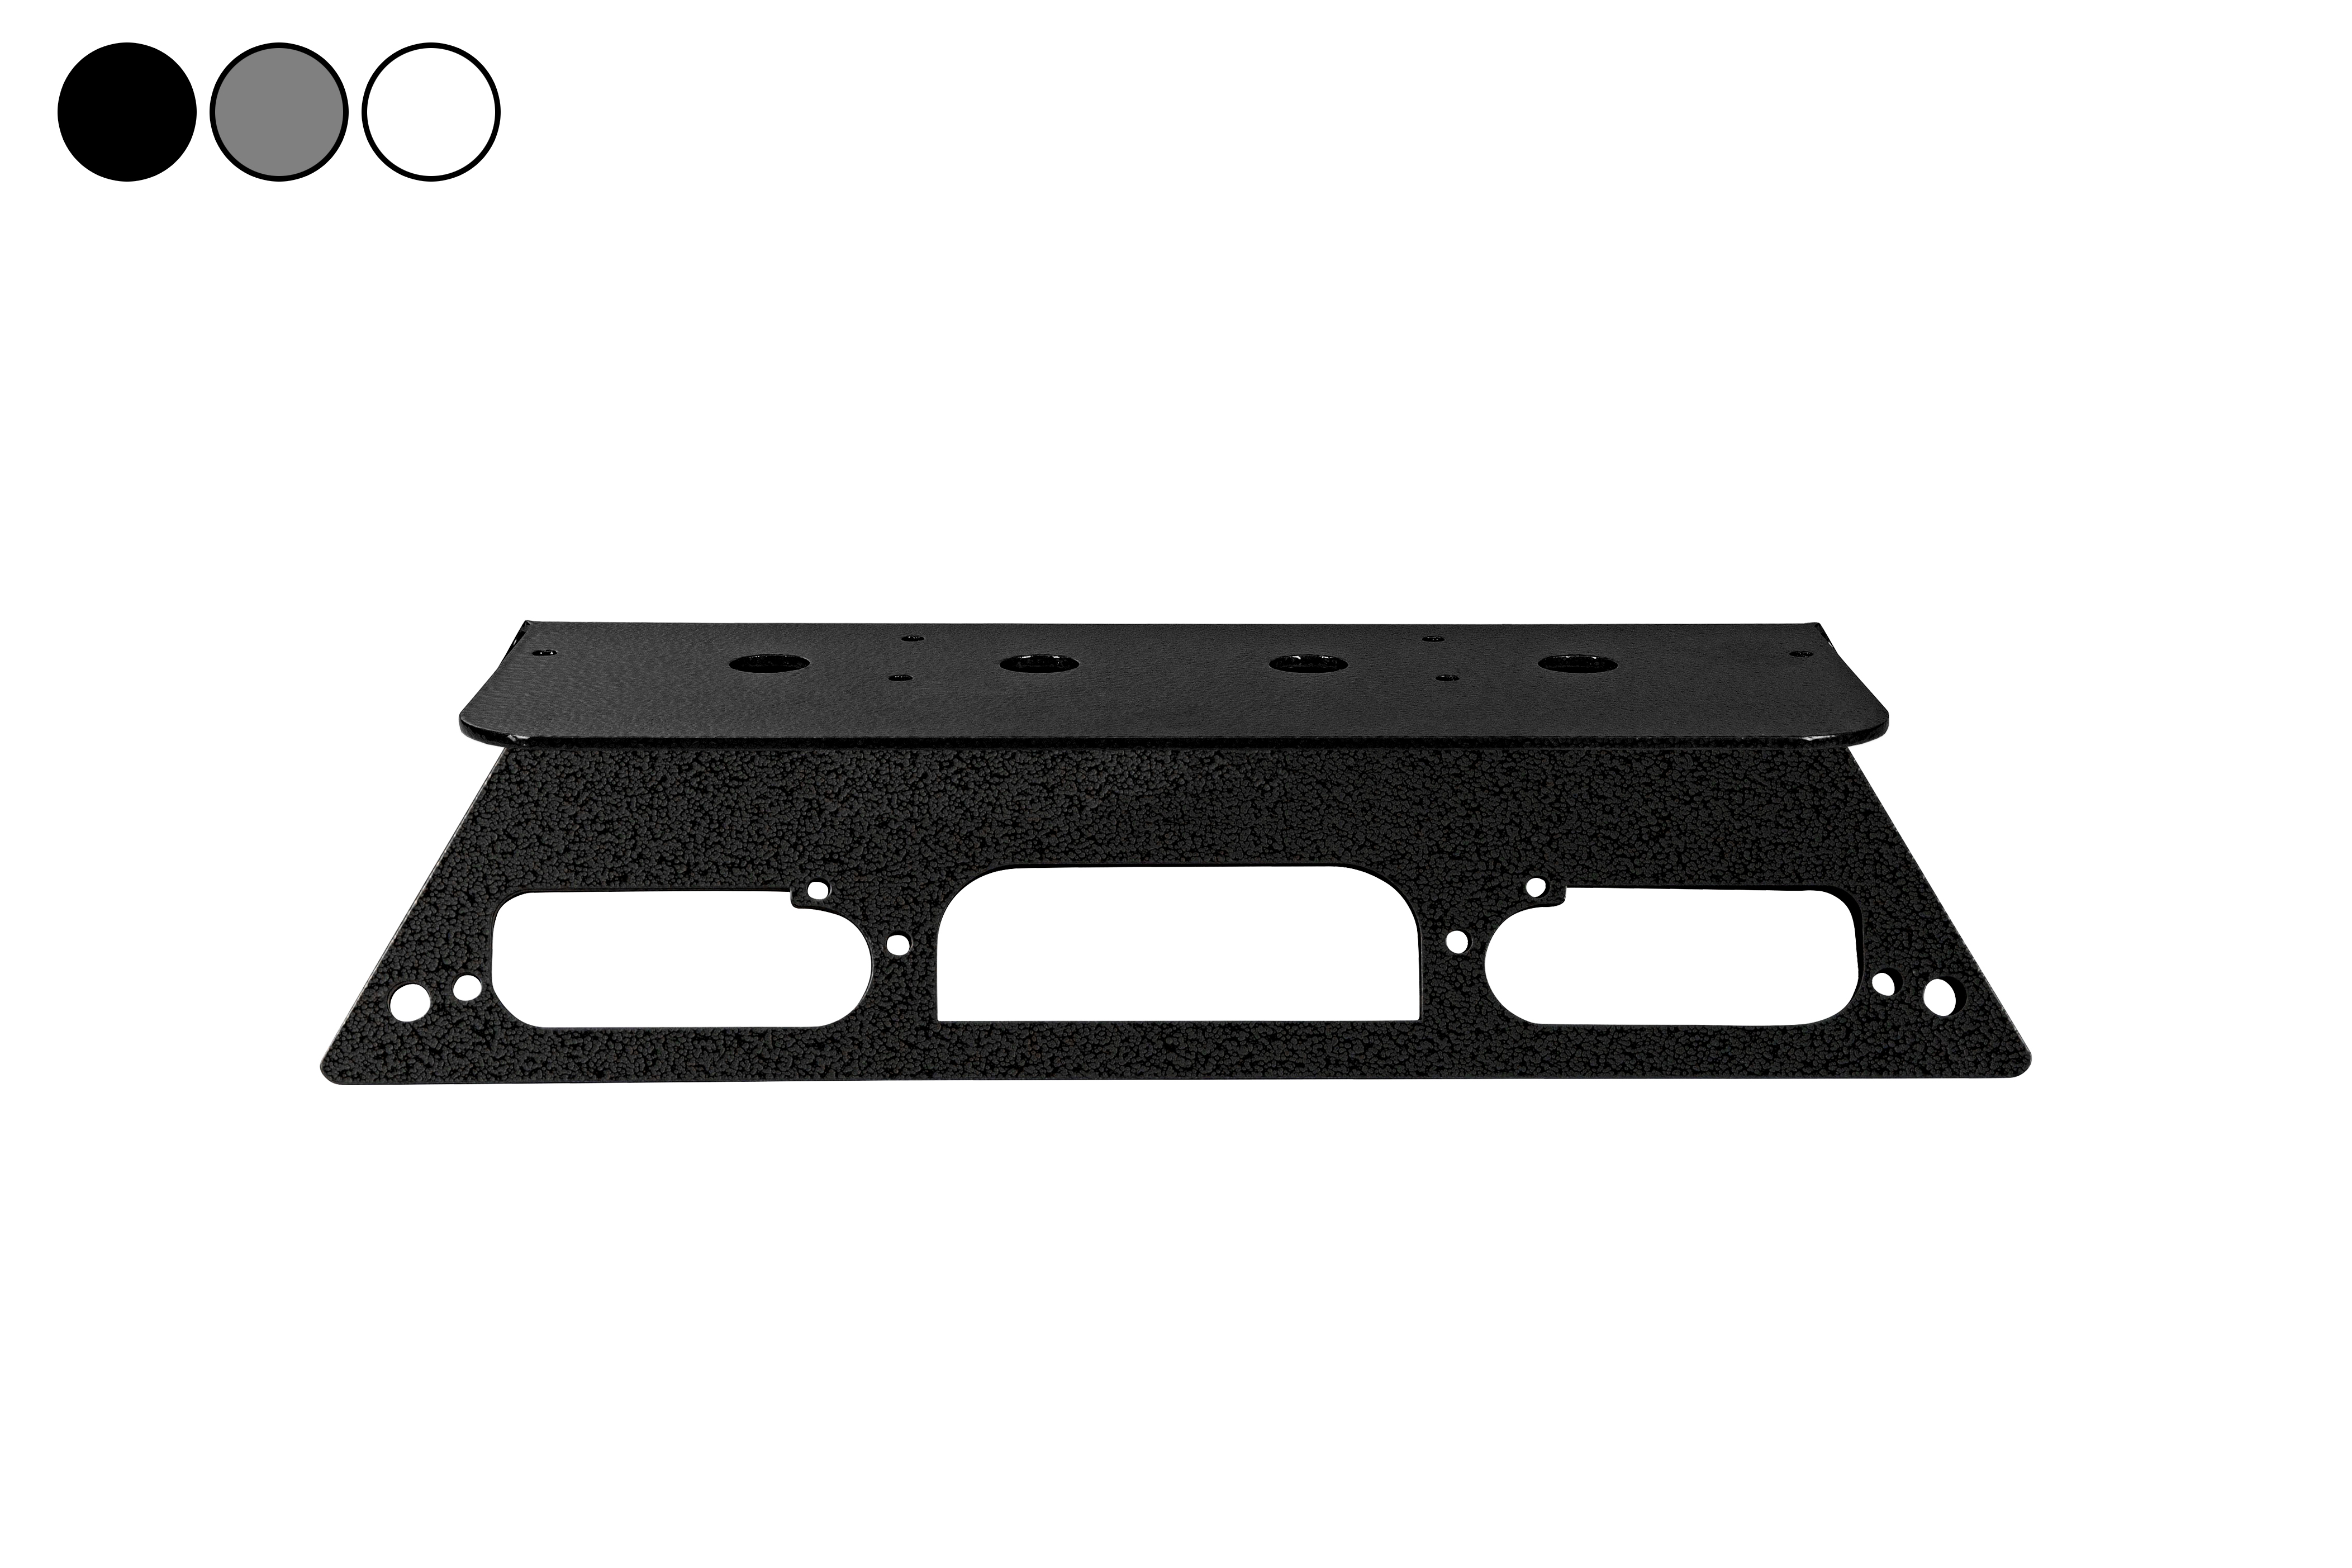 Antenna Mounting Plate - 2017 Ford Superduty F250 Aluminum Trucks w/ LED 3rd Brake Lights ...